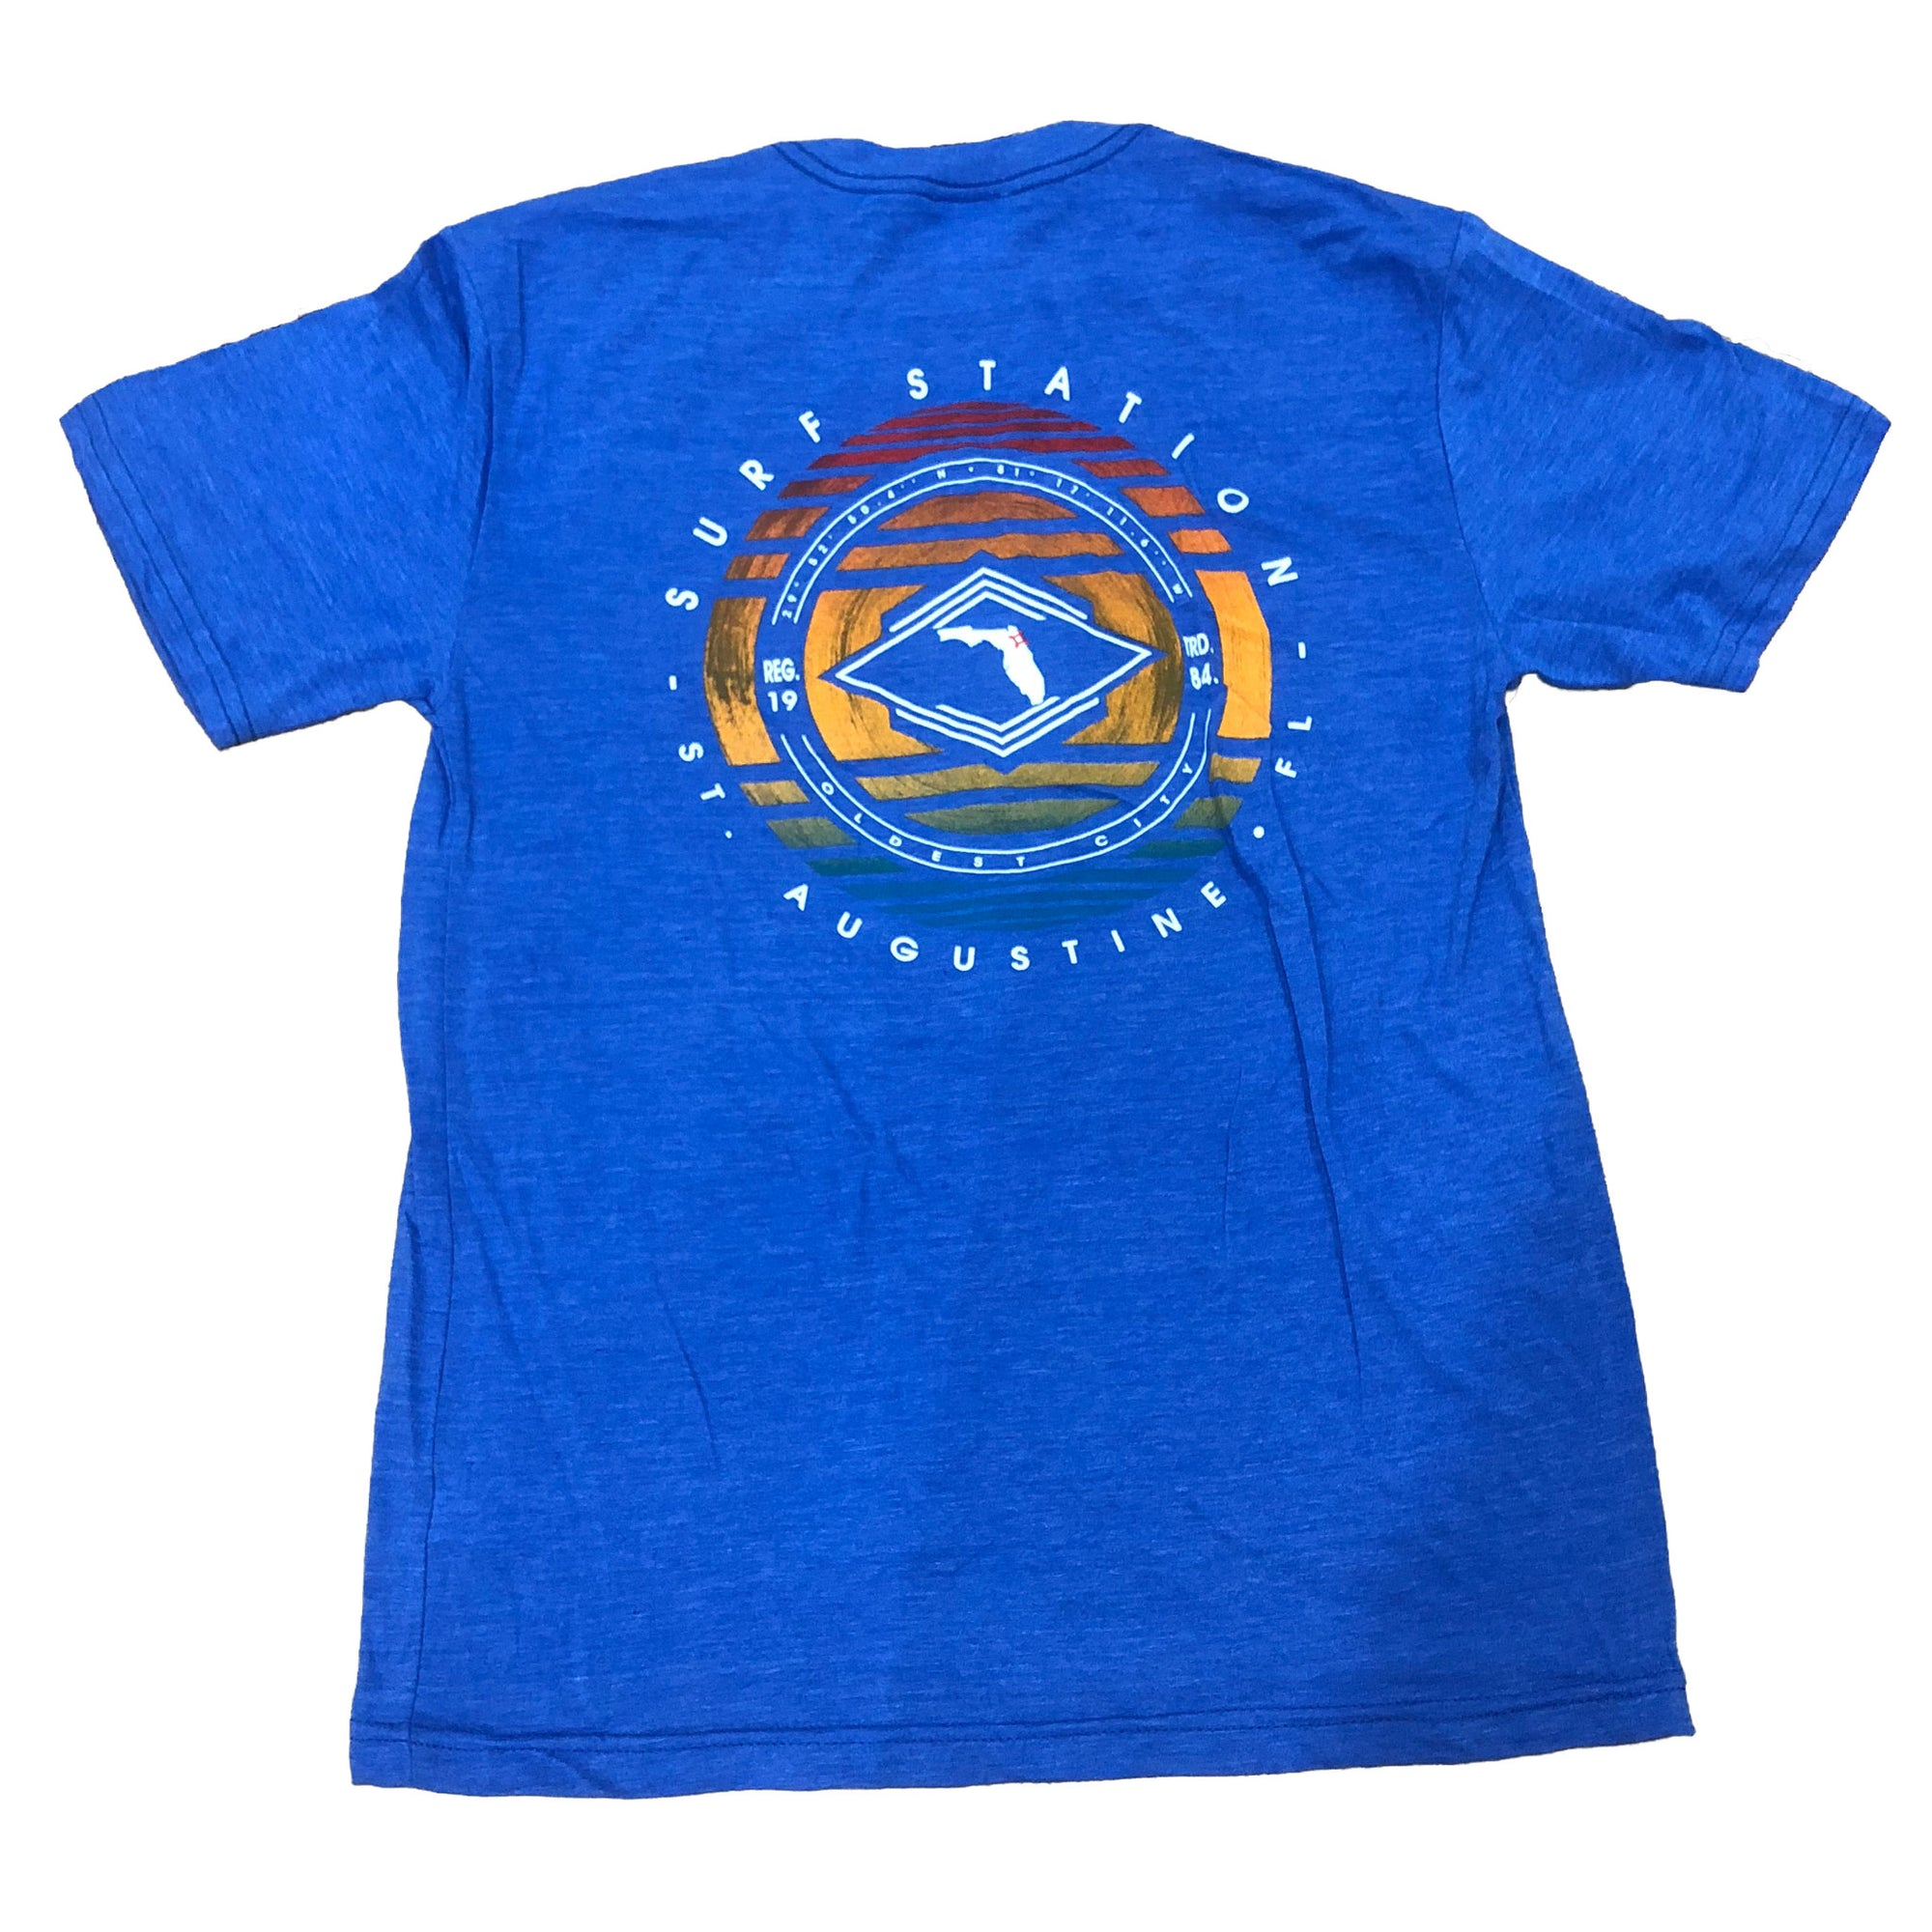 Surf Station Oldest City Coordinates Men's S/S T-Shirt